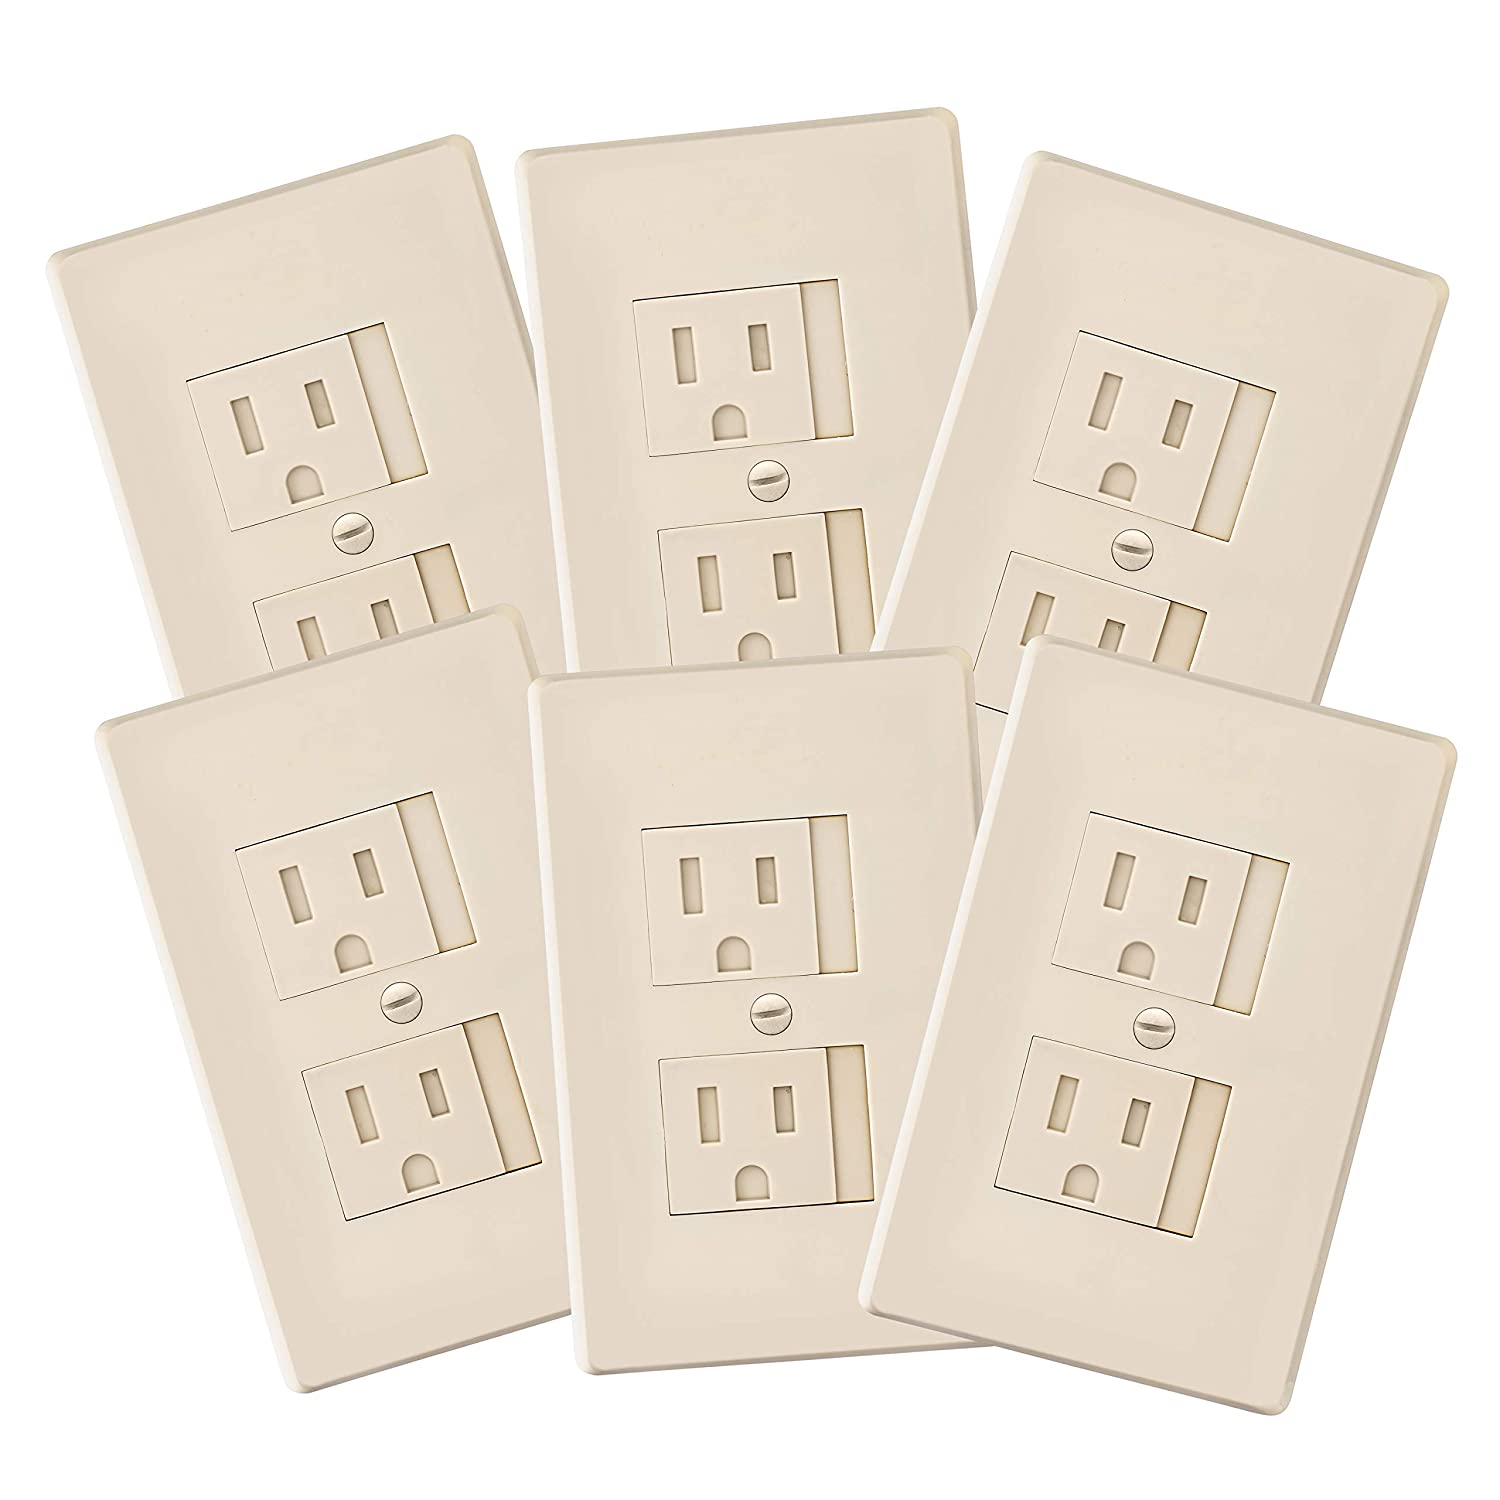 6-Pack Self-Closing Babyproof Outlet Covers - an Alternative to Wall Socket Plugs for Child Proofing Standard Outlets (1 Screw), Beige